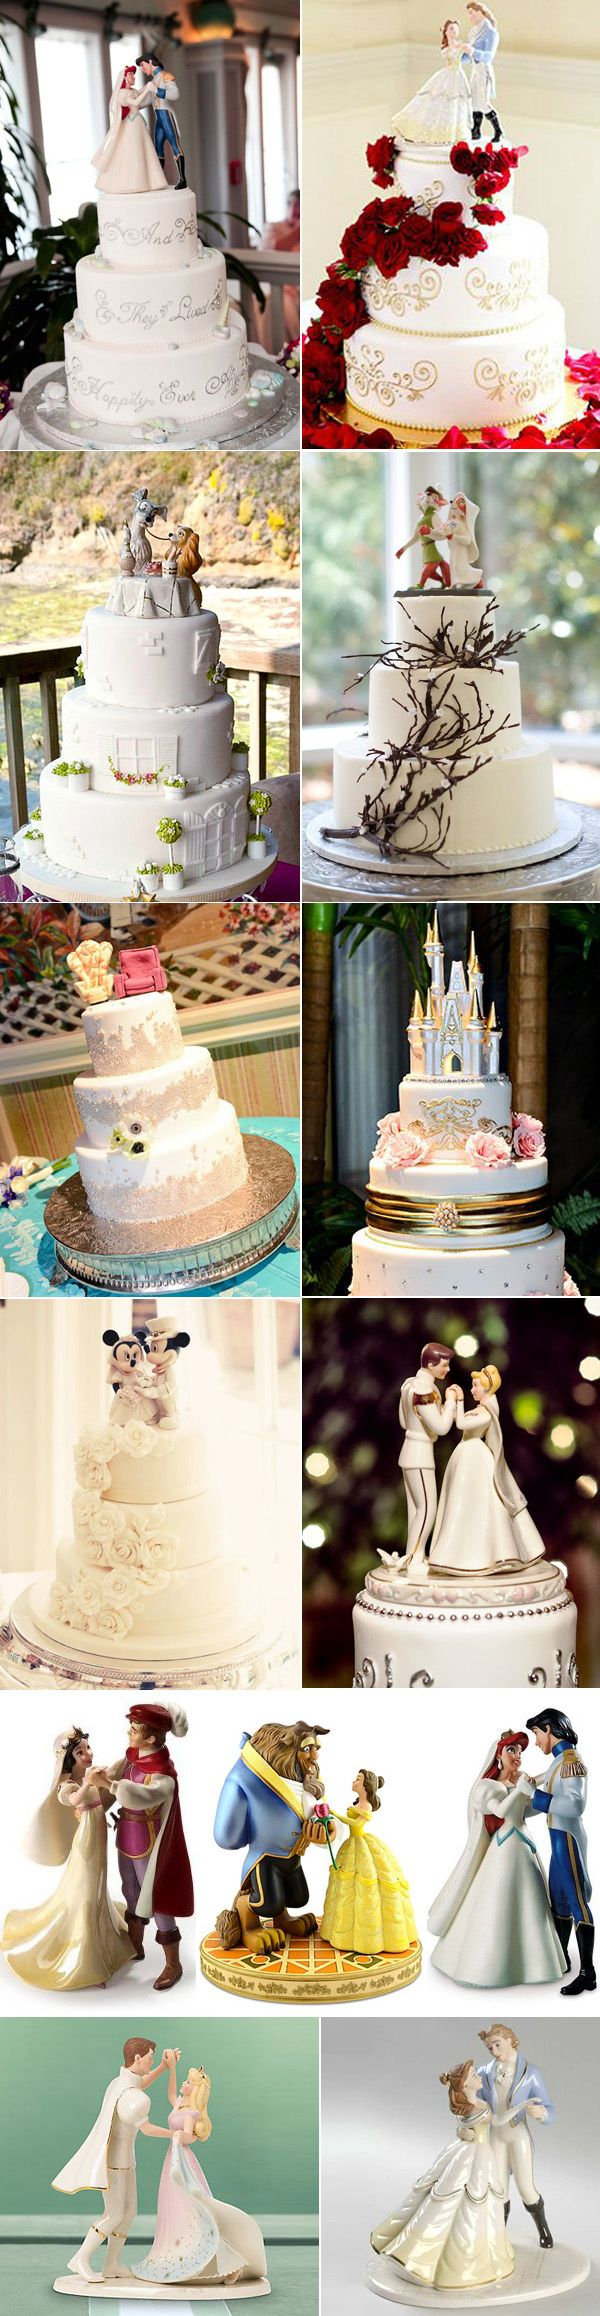 39 Unique  Disney Wedding Cake Toppers